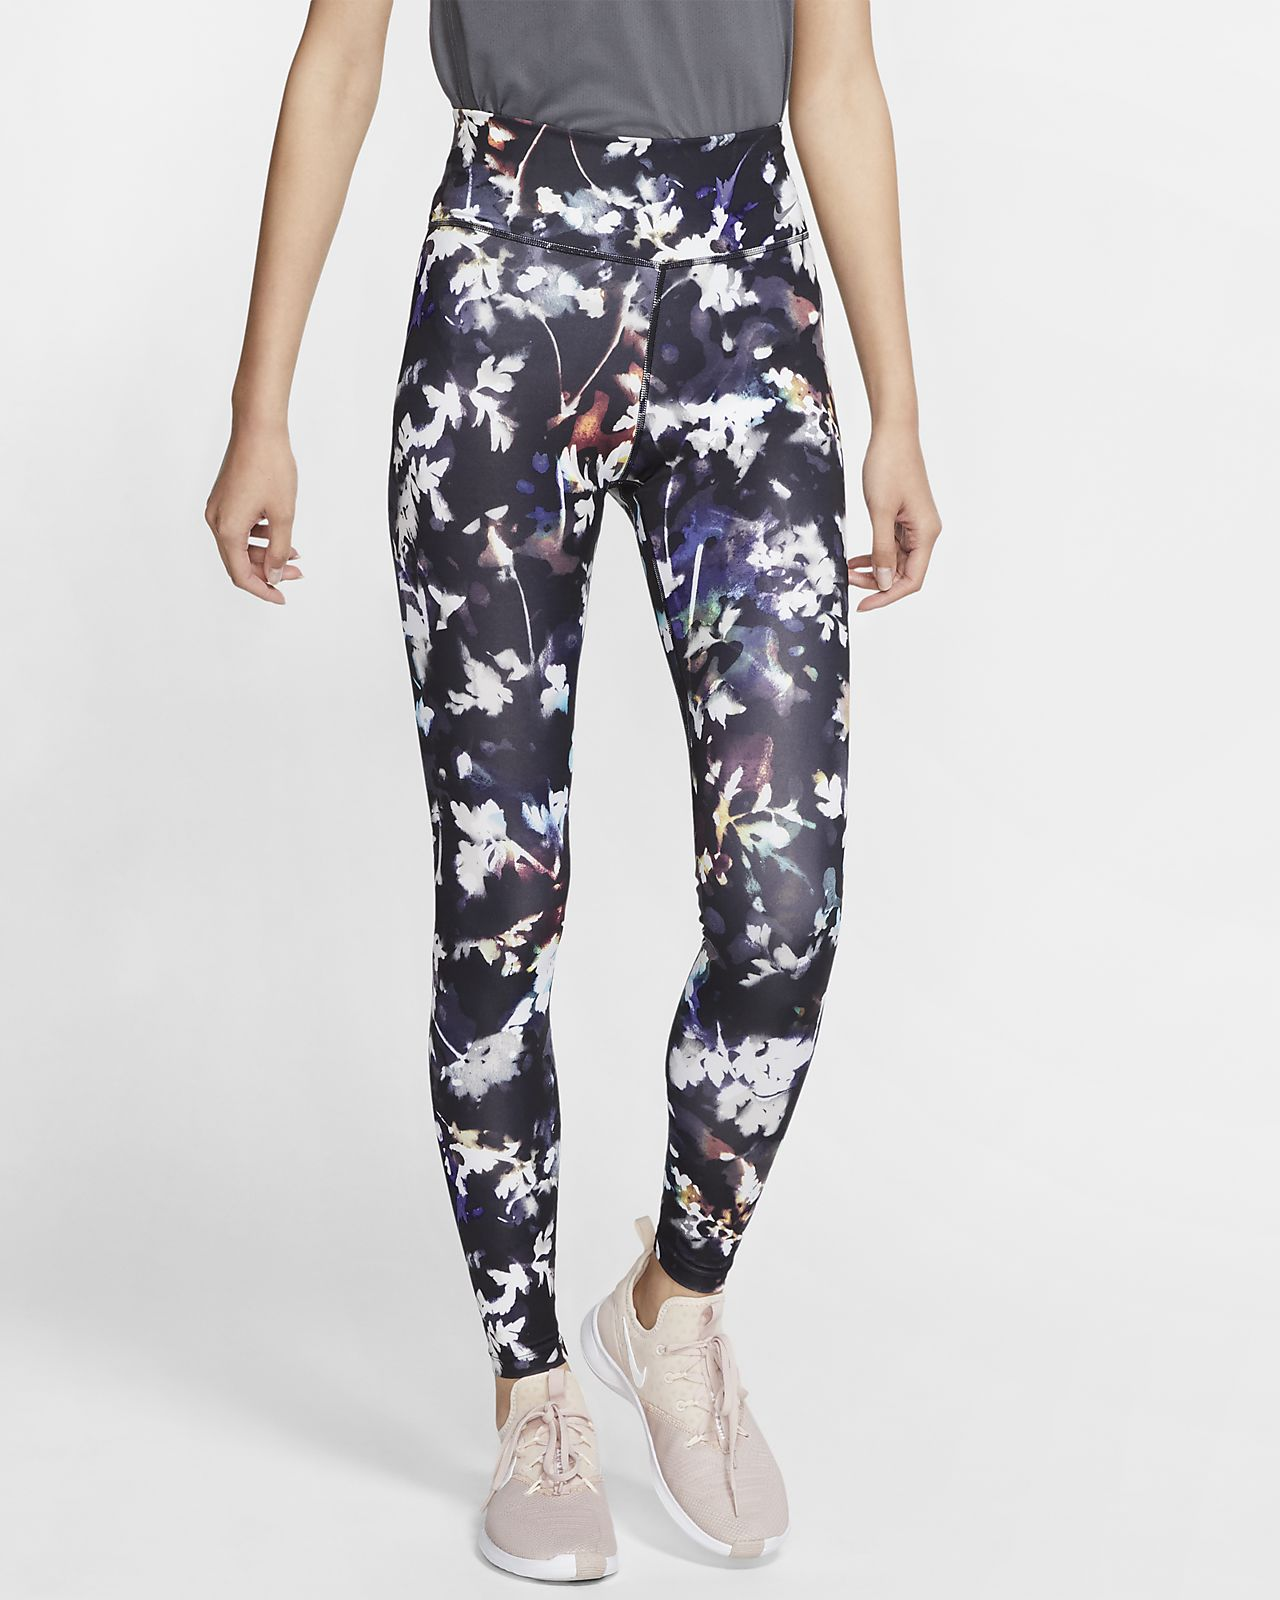 Nike One Damen-Tights mit Print